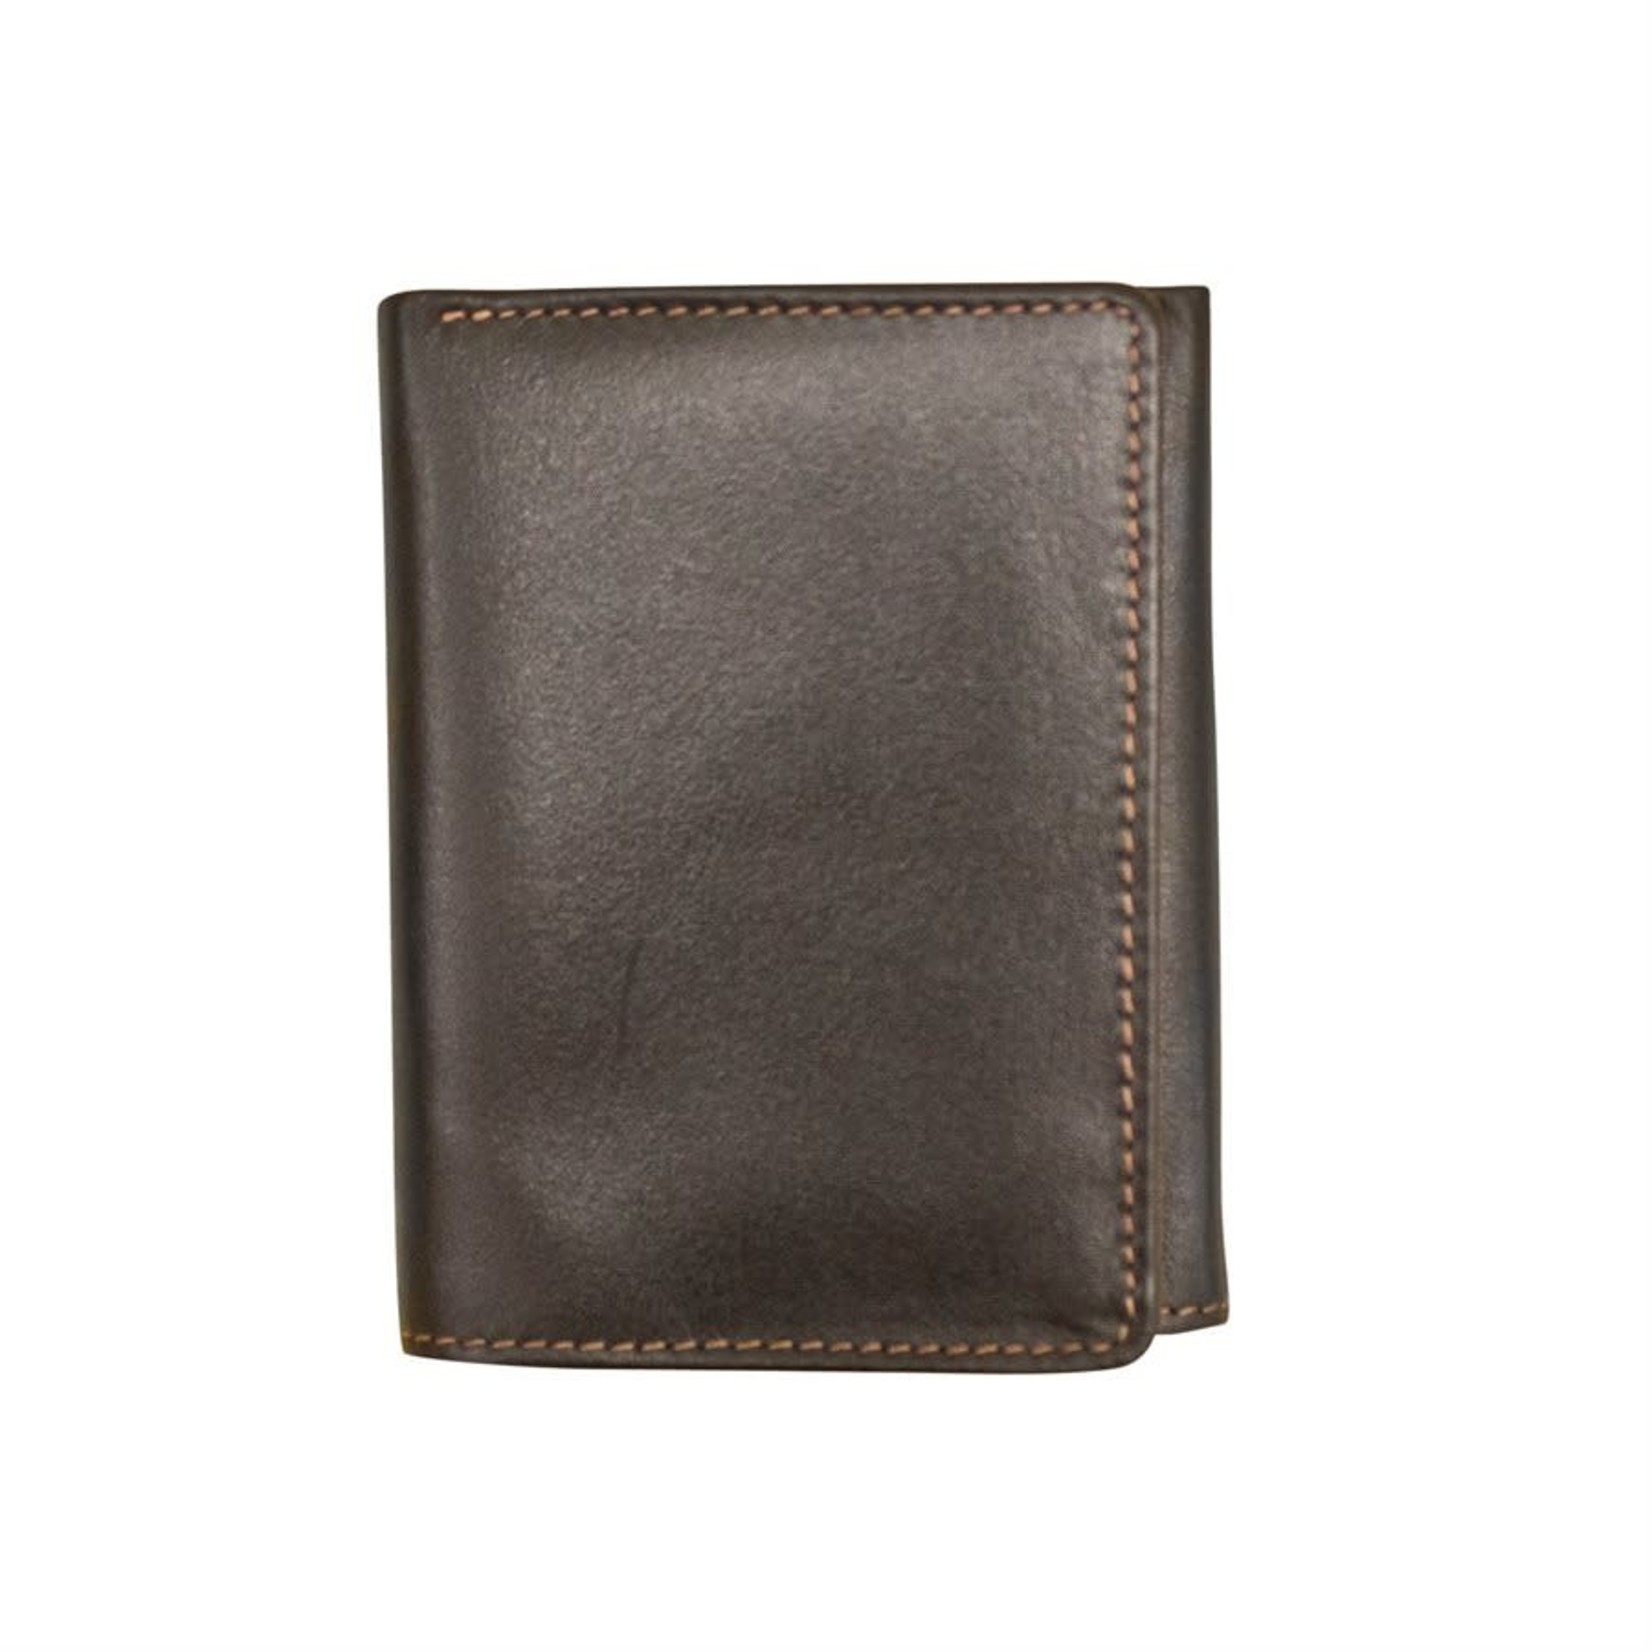 Leather Handbags and Accessories 7730 Black/Toffee - RFID TriFold Wallet